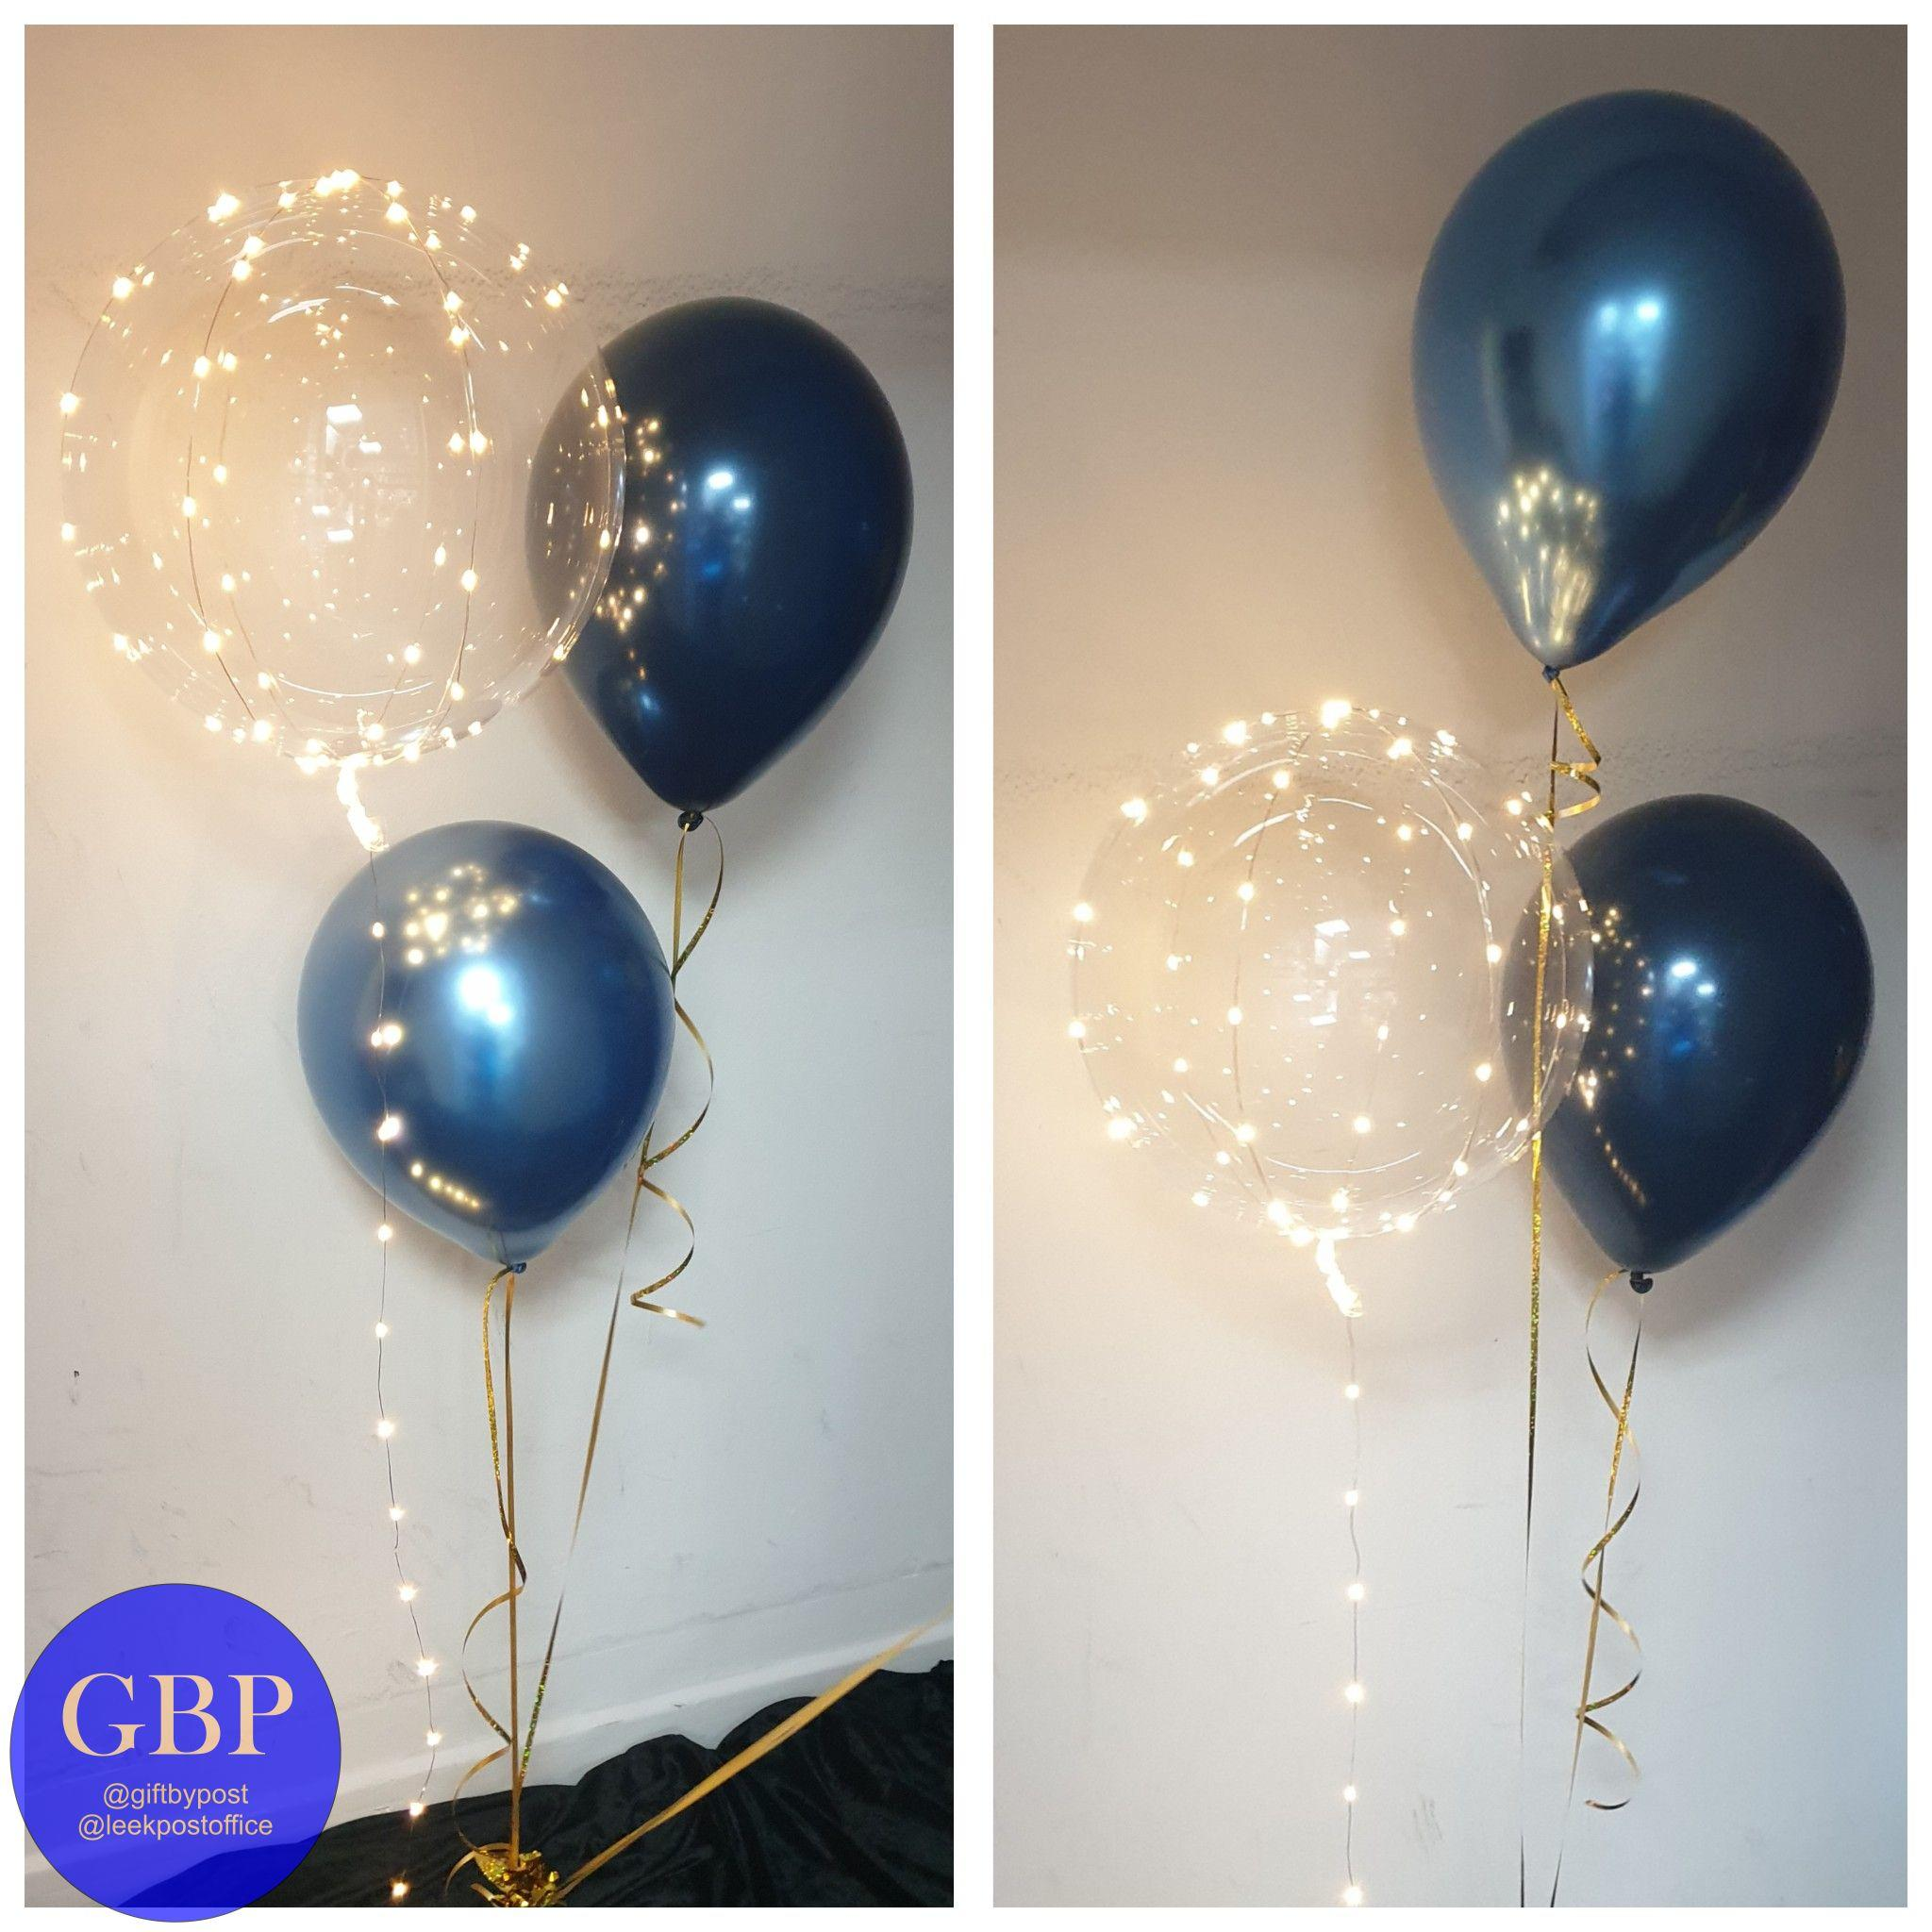 LED bouquet, 1 LED and 2 latex balloons